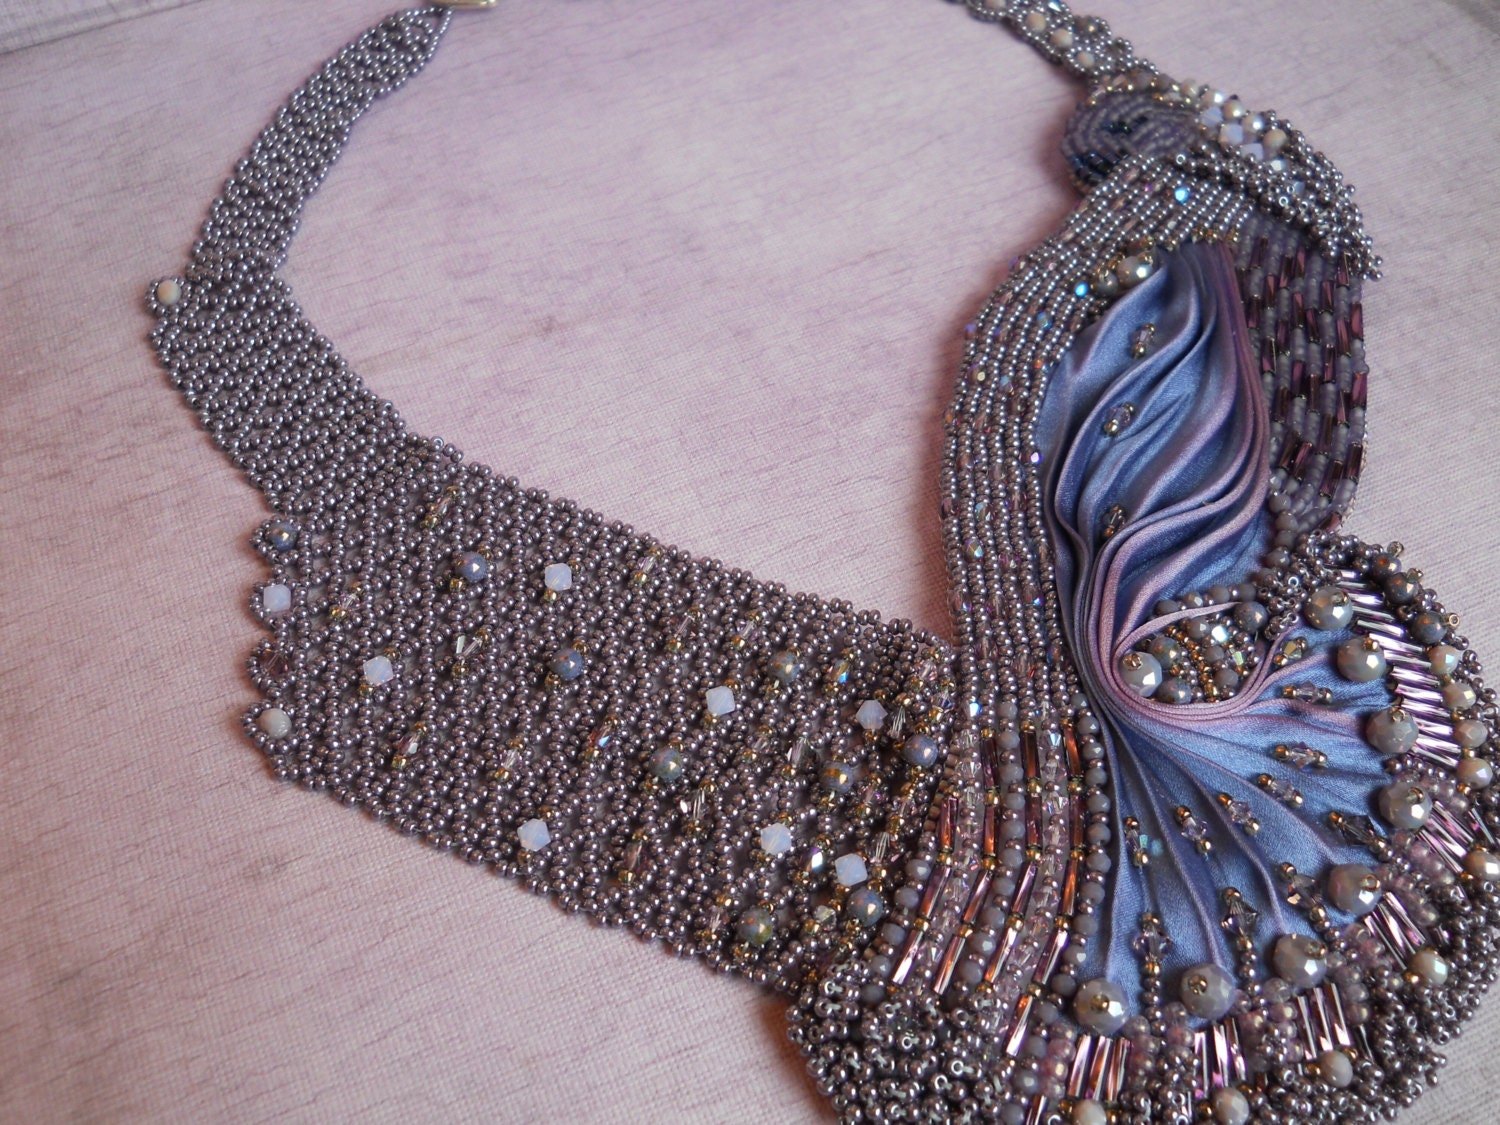 Shibori silk bead embroidery violet bird inspired necklace